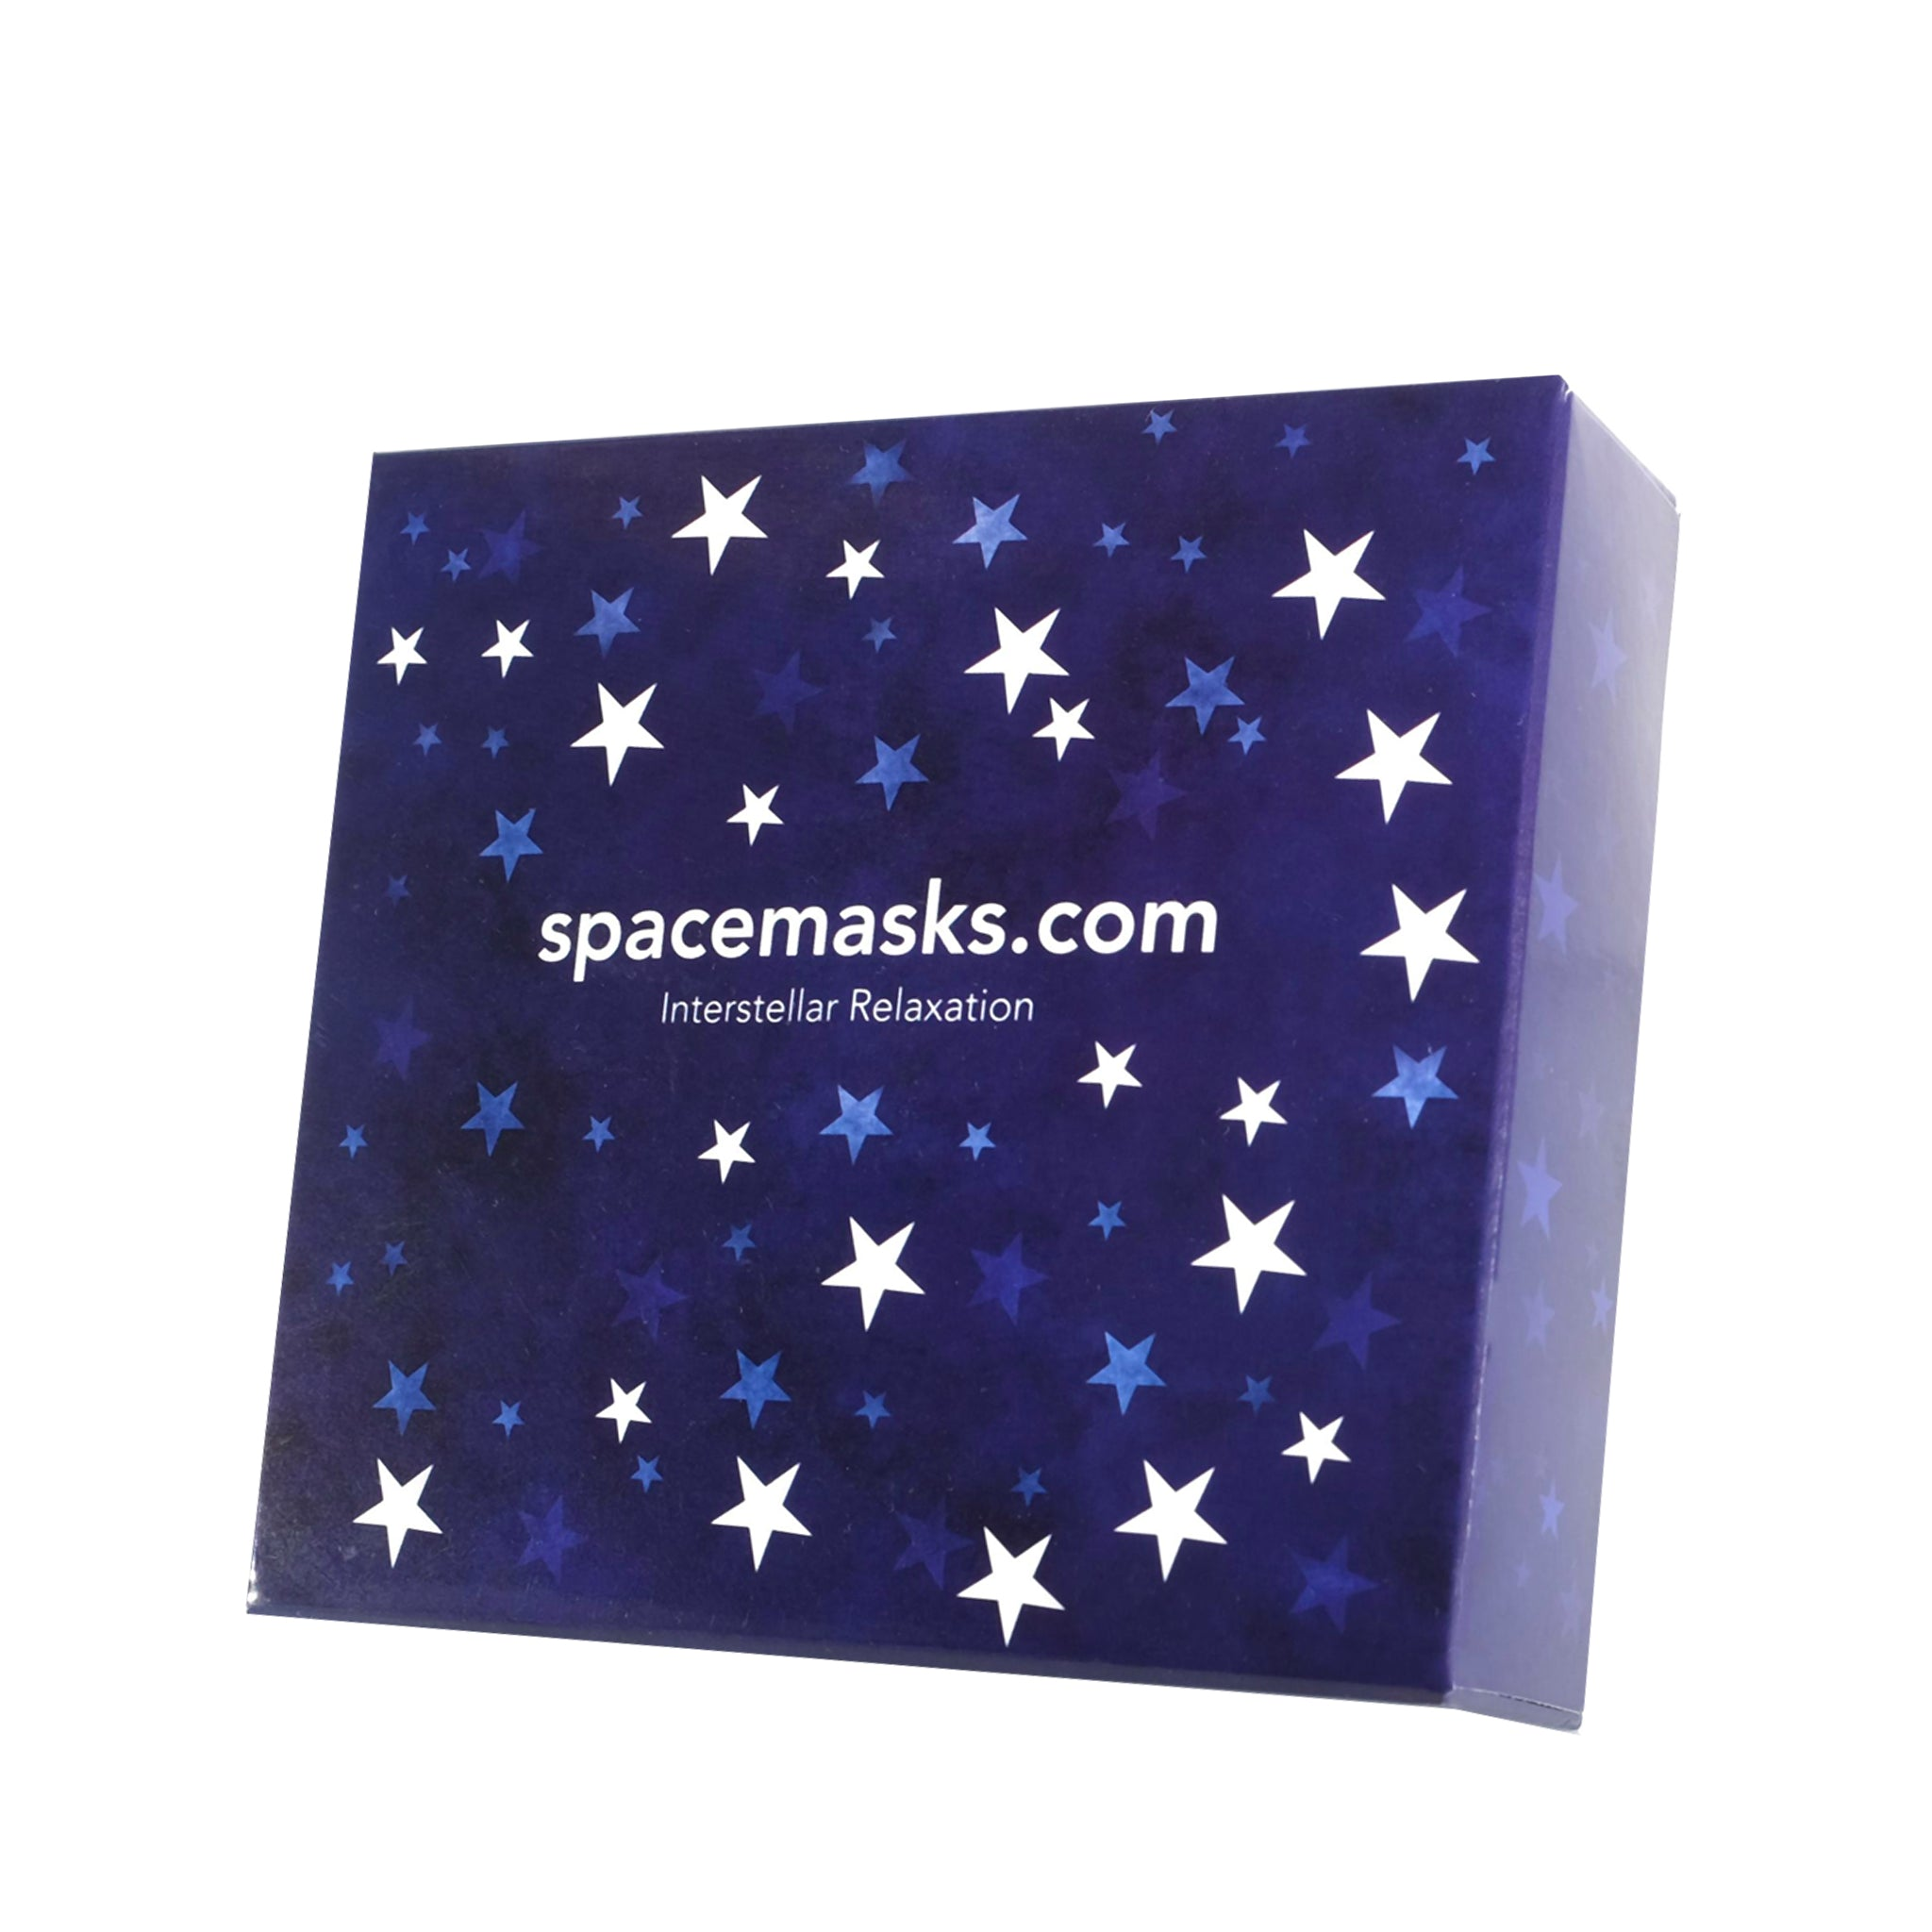 Spacemasks Self Heating Eye Mask Box Set